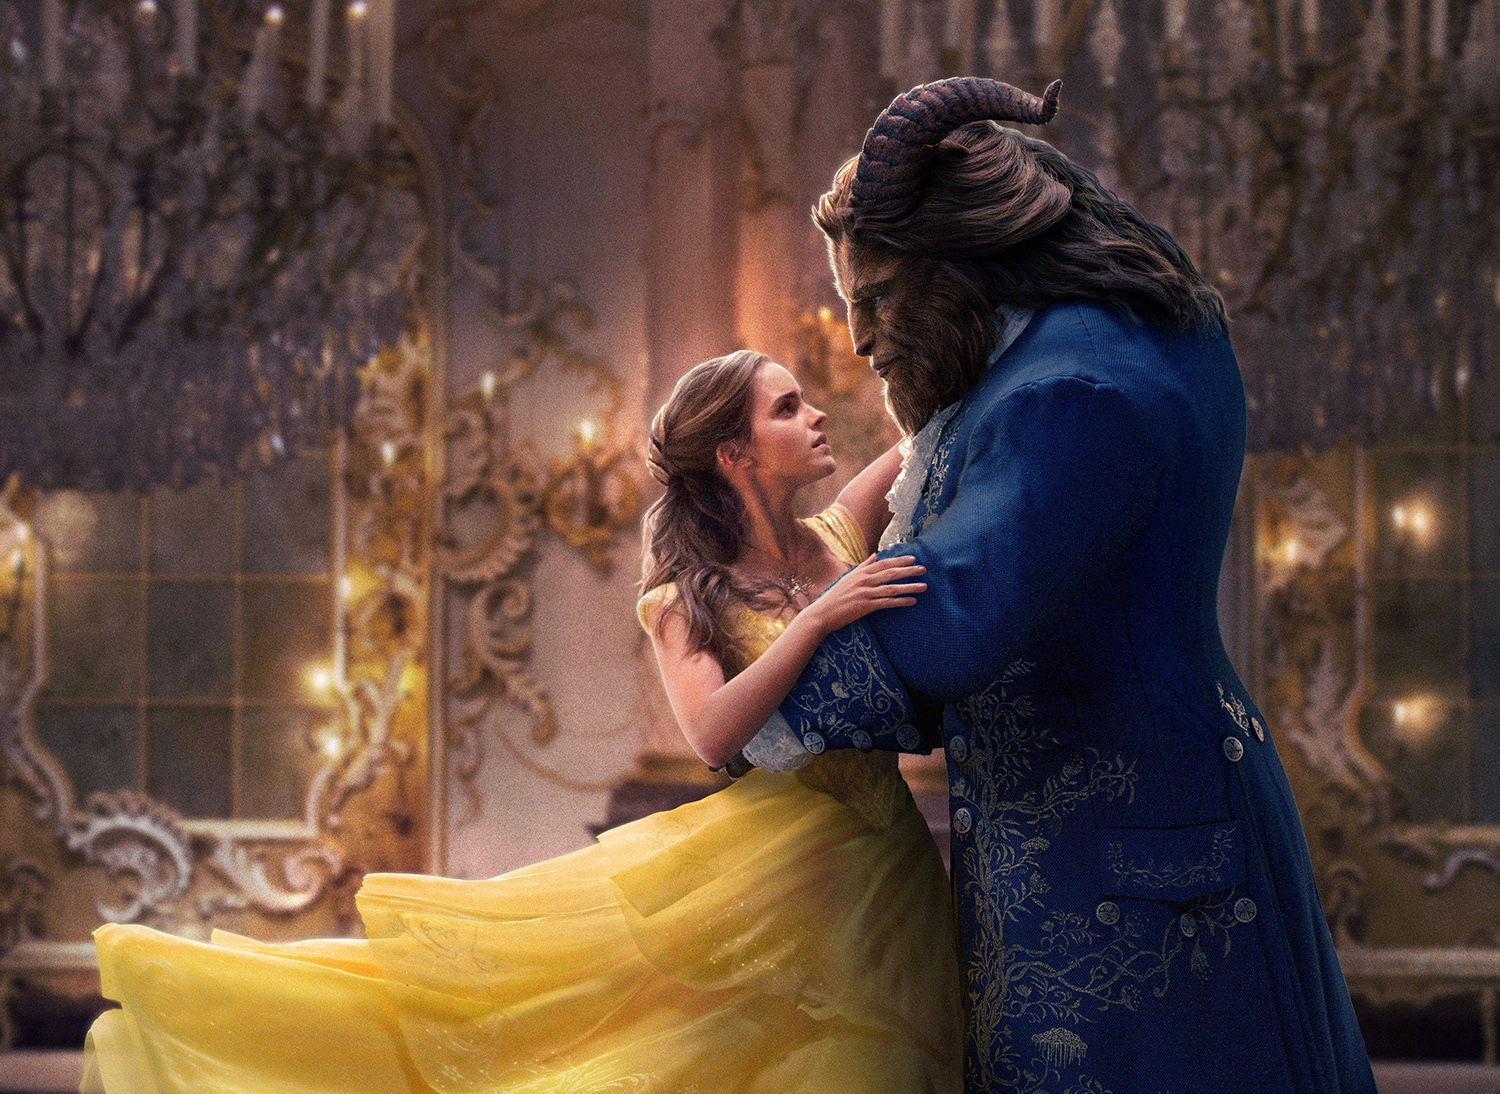 Beauty And The Beast Wallpaper Hd Lovelytab